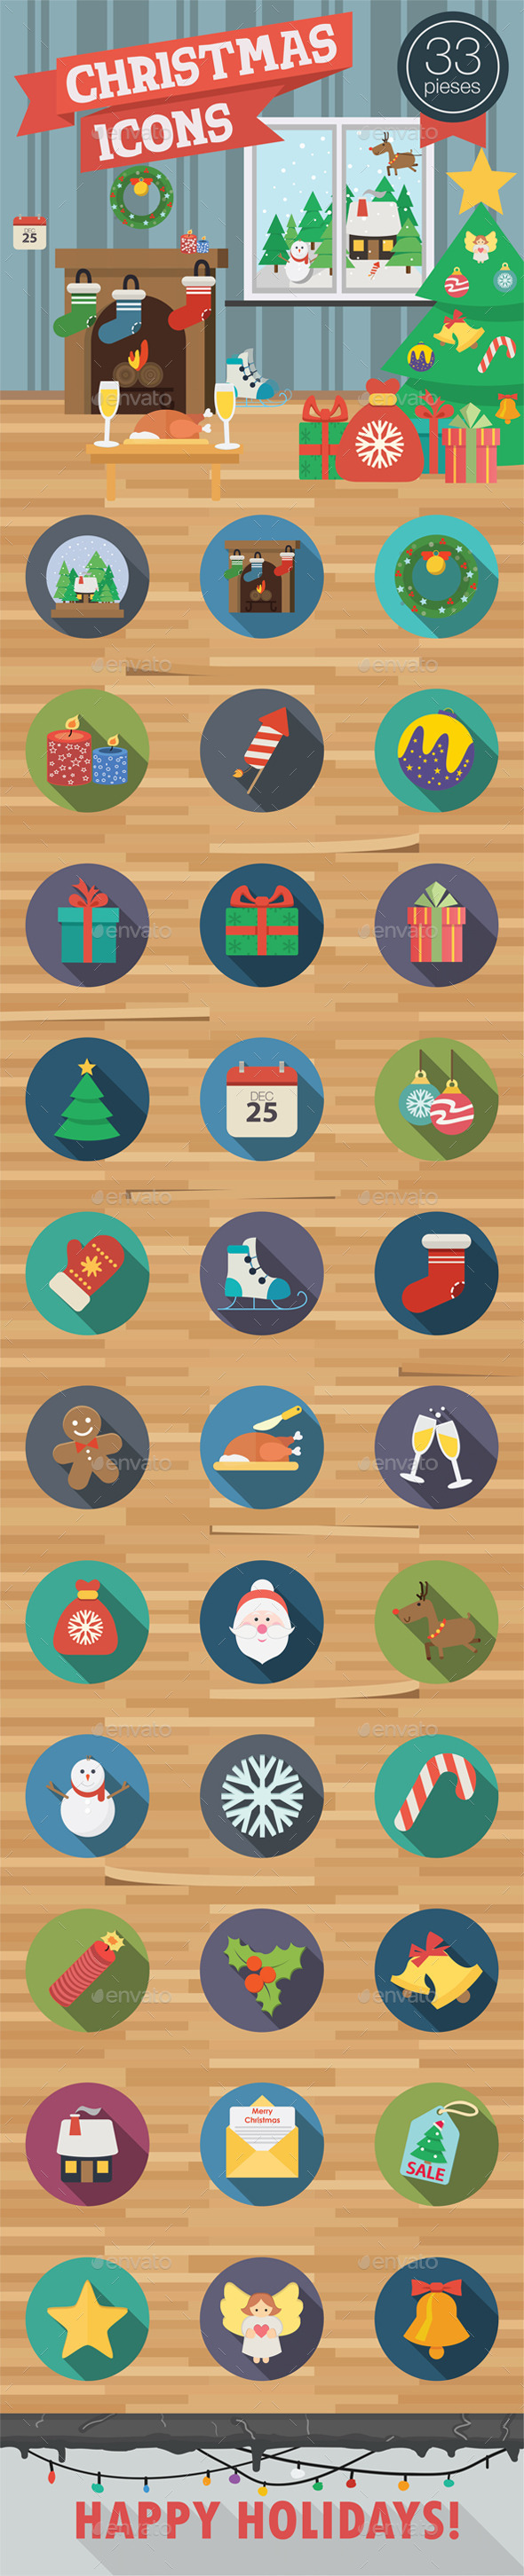 Christmas Icons in Flat Style - Seasonal Icons